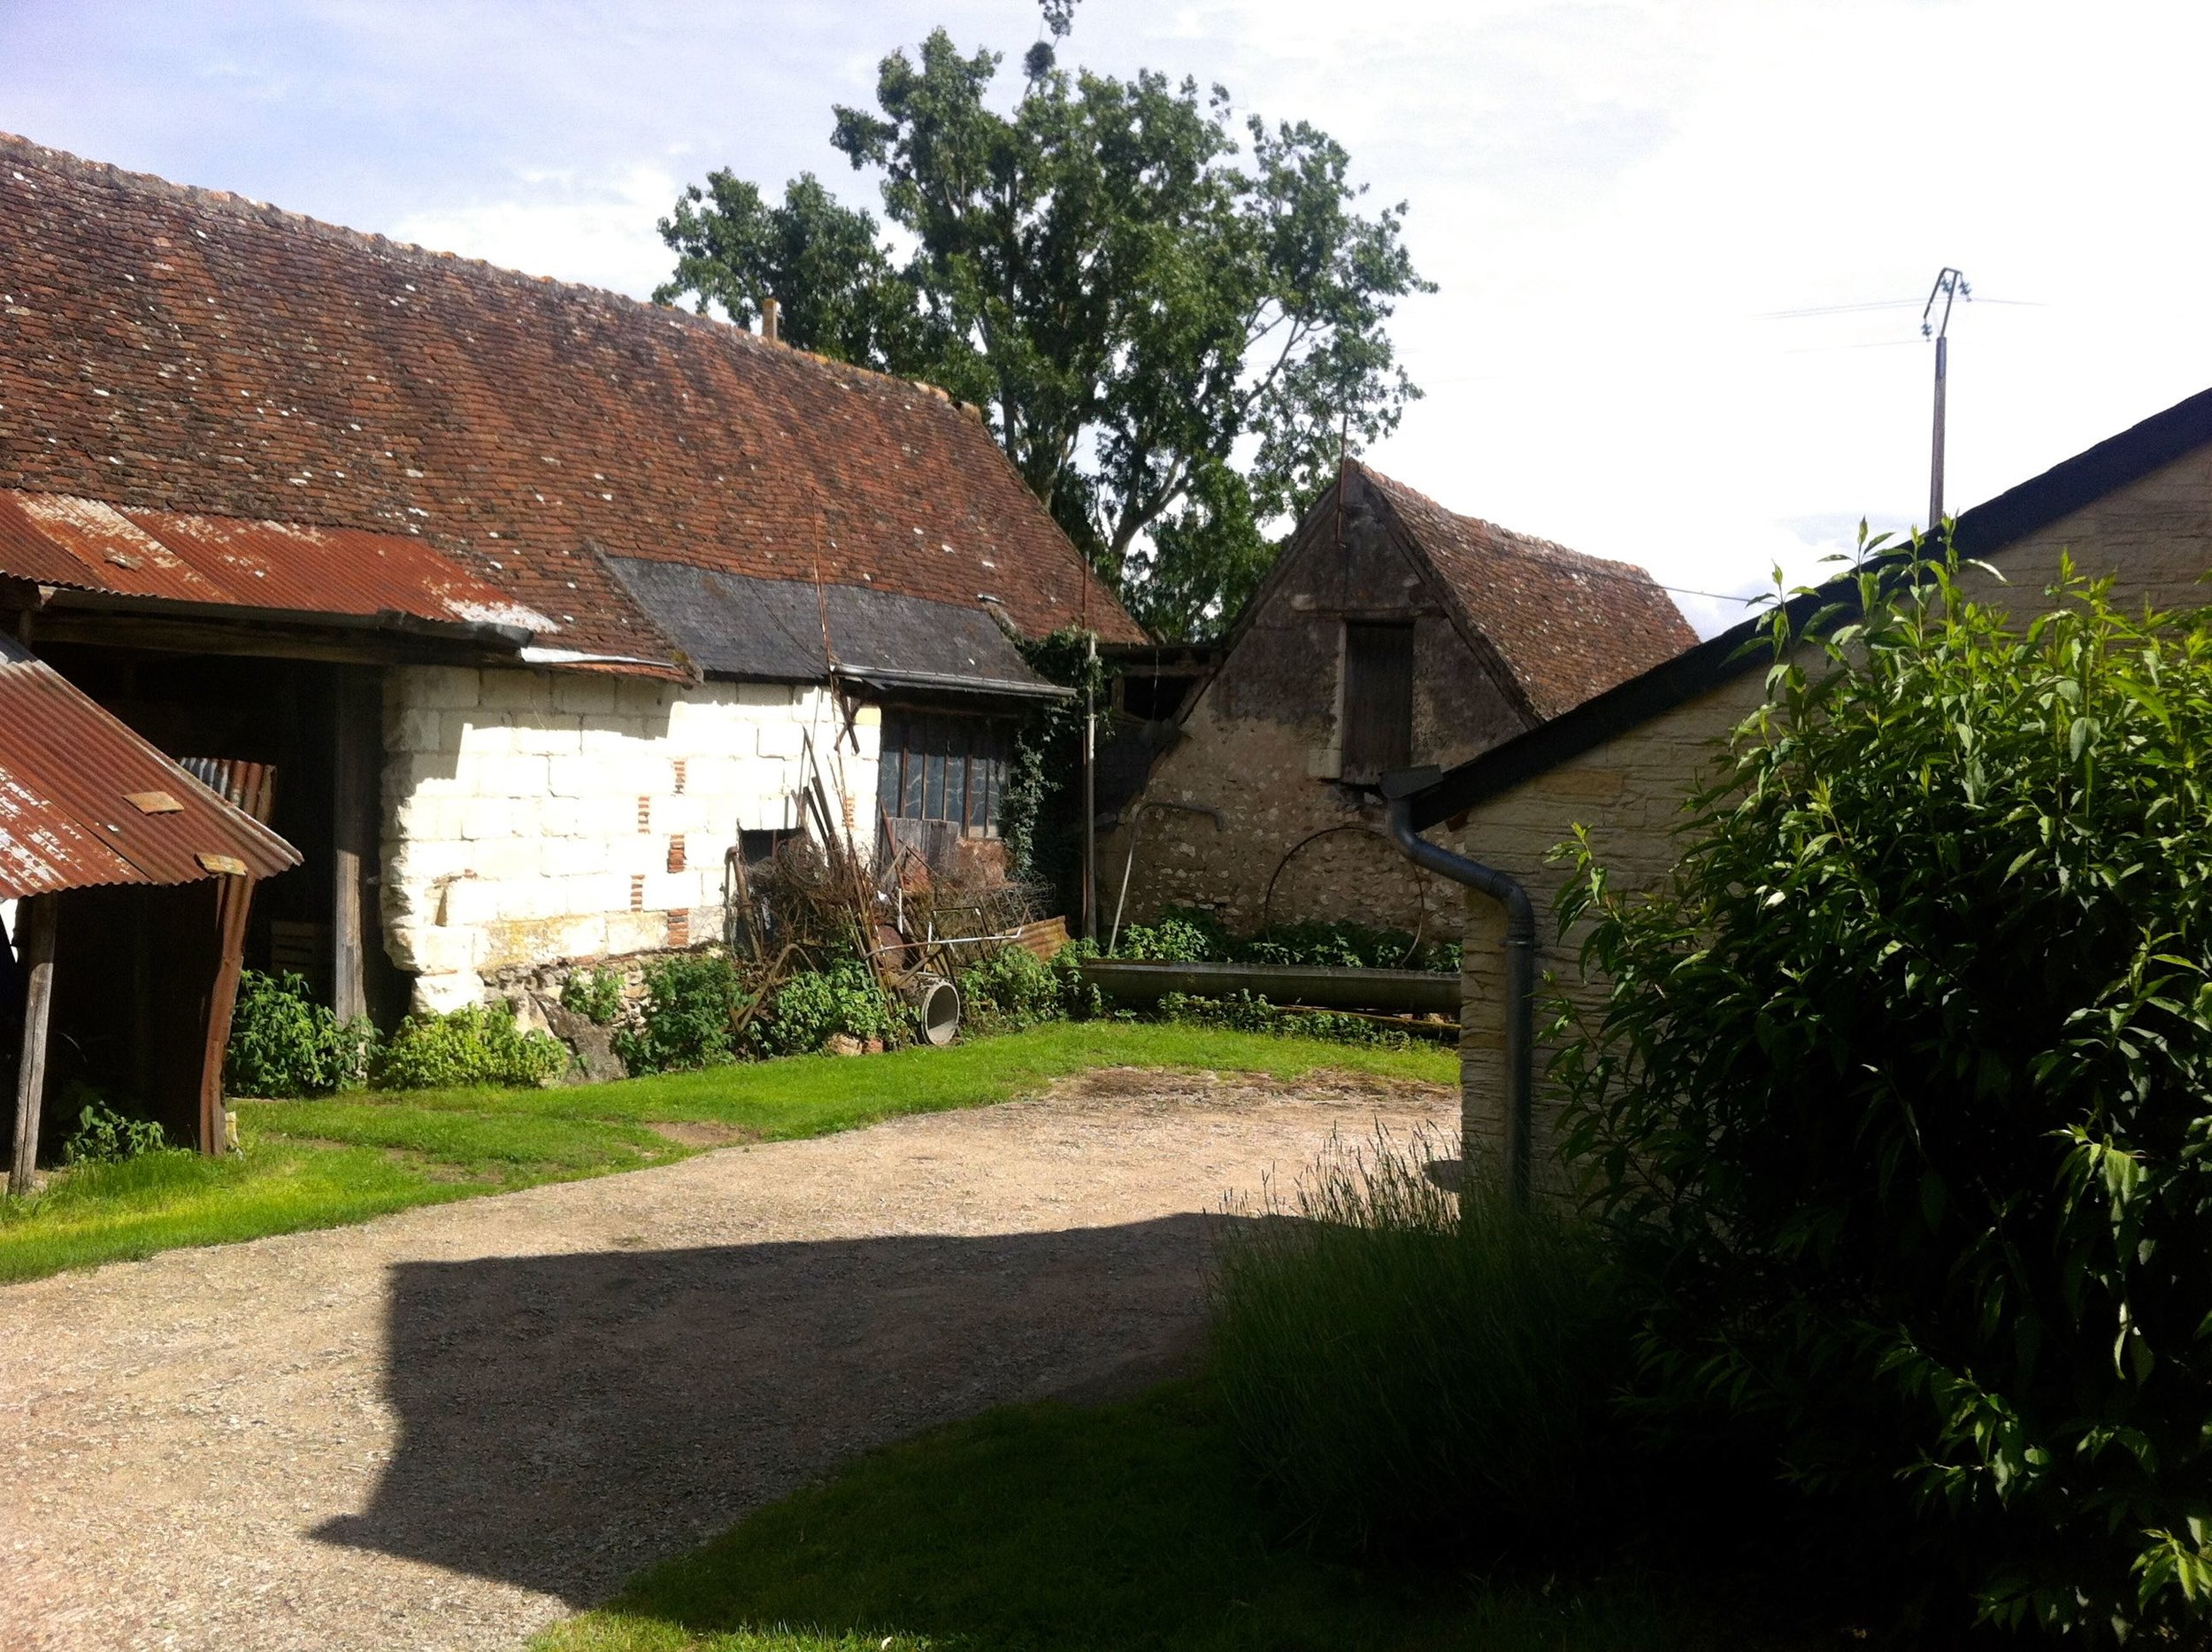 A glimpse into a French farmyard while cycling through the Loire